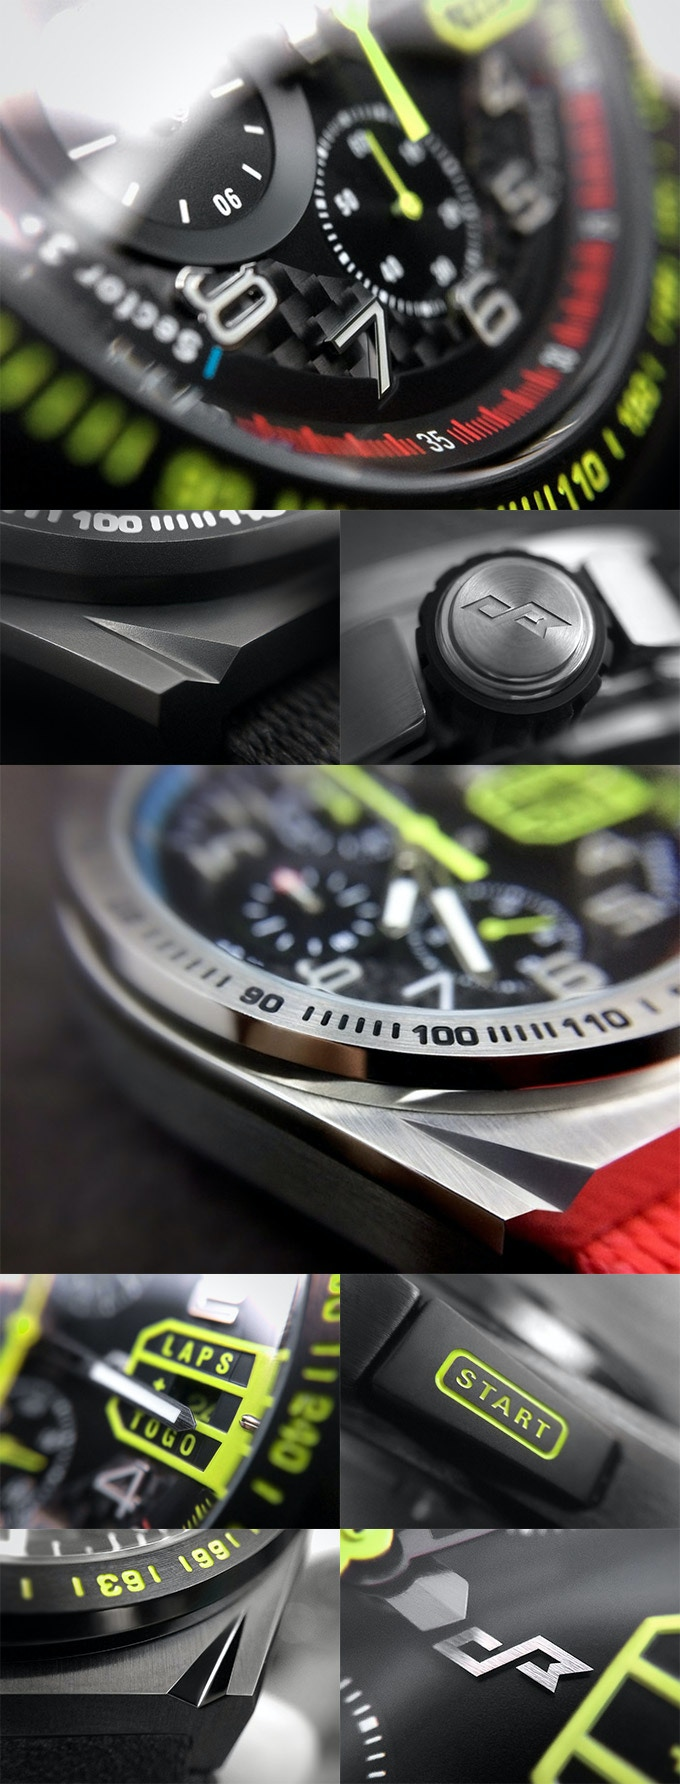 Paddock Chronograph in details